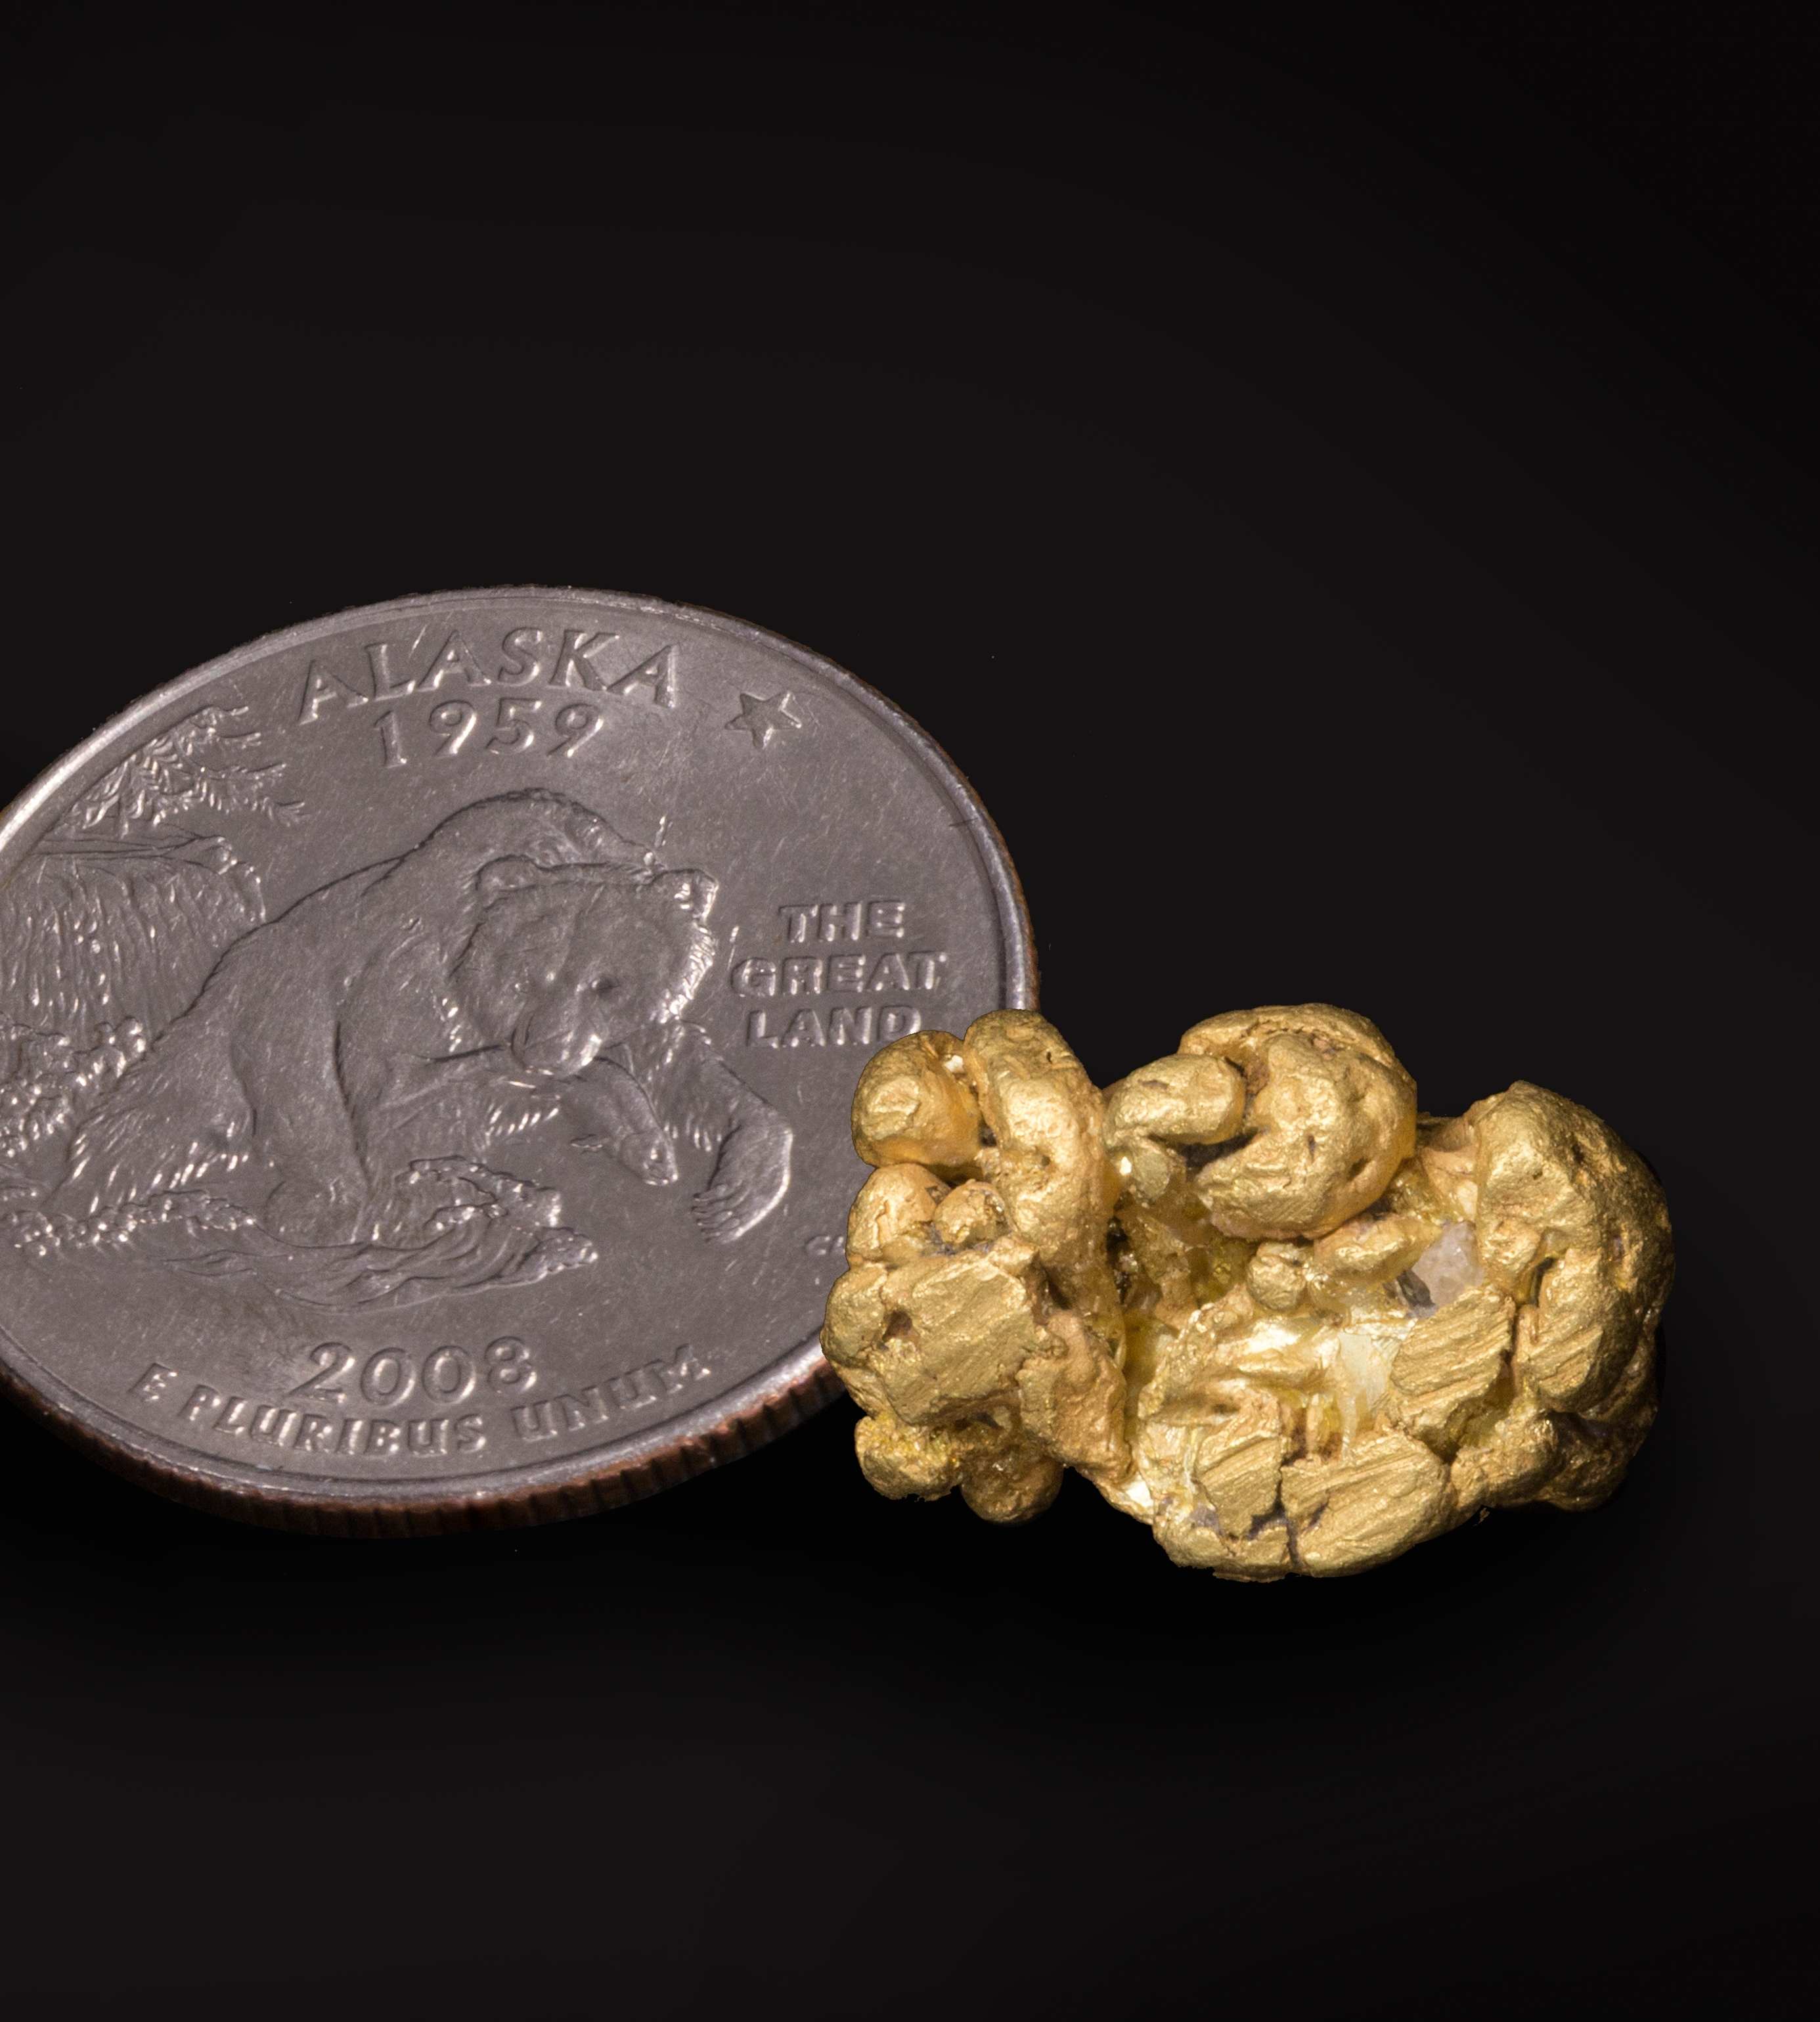 Alaskan Gold Nugget, Gold Nuggets for Sale, genuine gold nuggets, collect gold nuggets, gold nugget gifts, gold nugget collection, gold nugget investment, Gold Nuggets Alaska